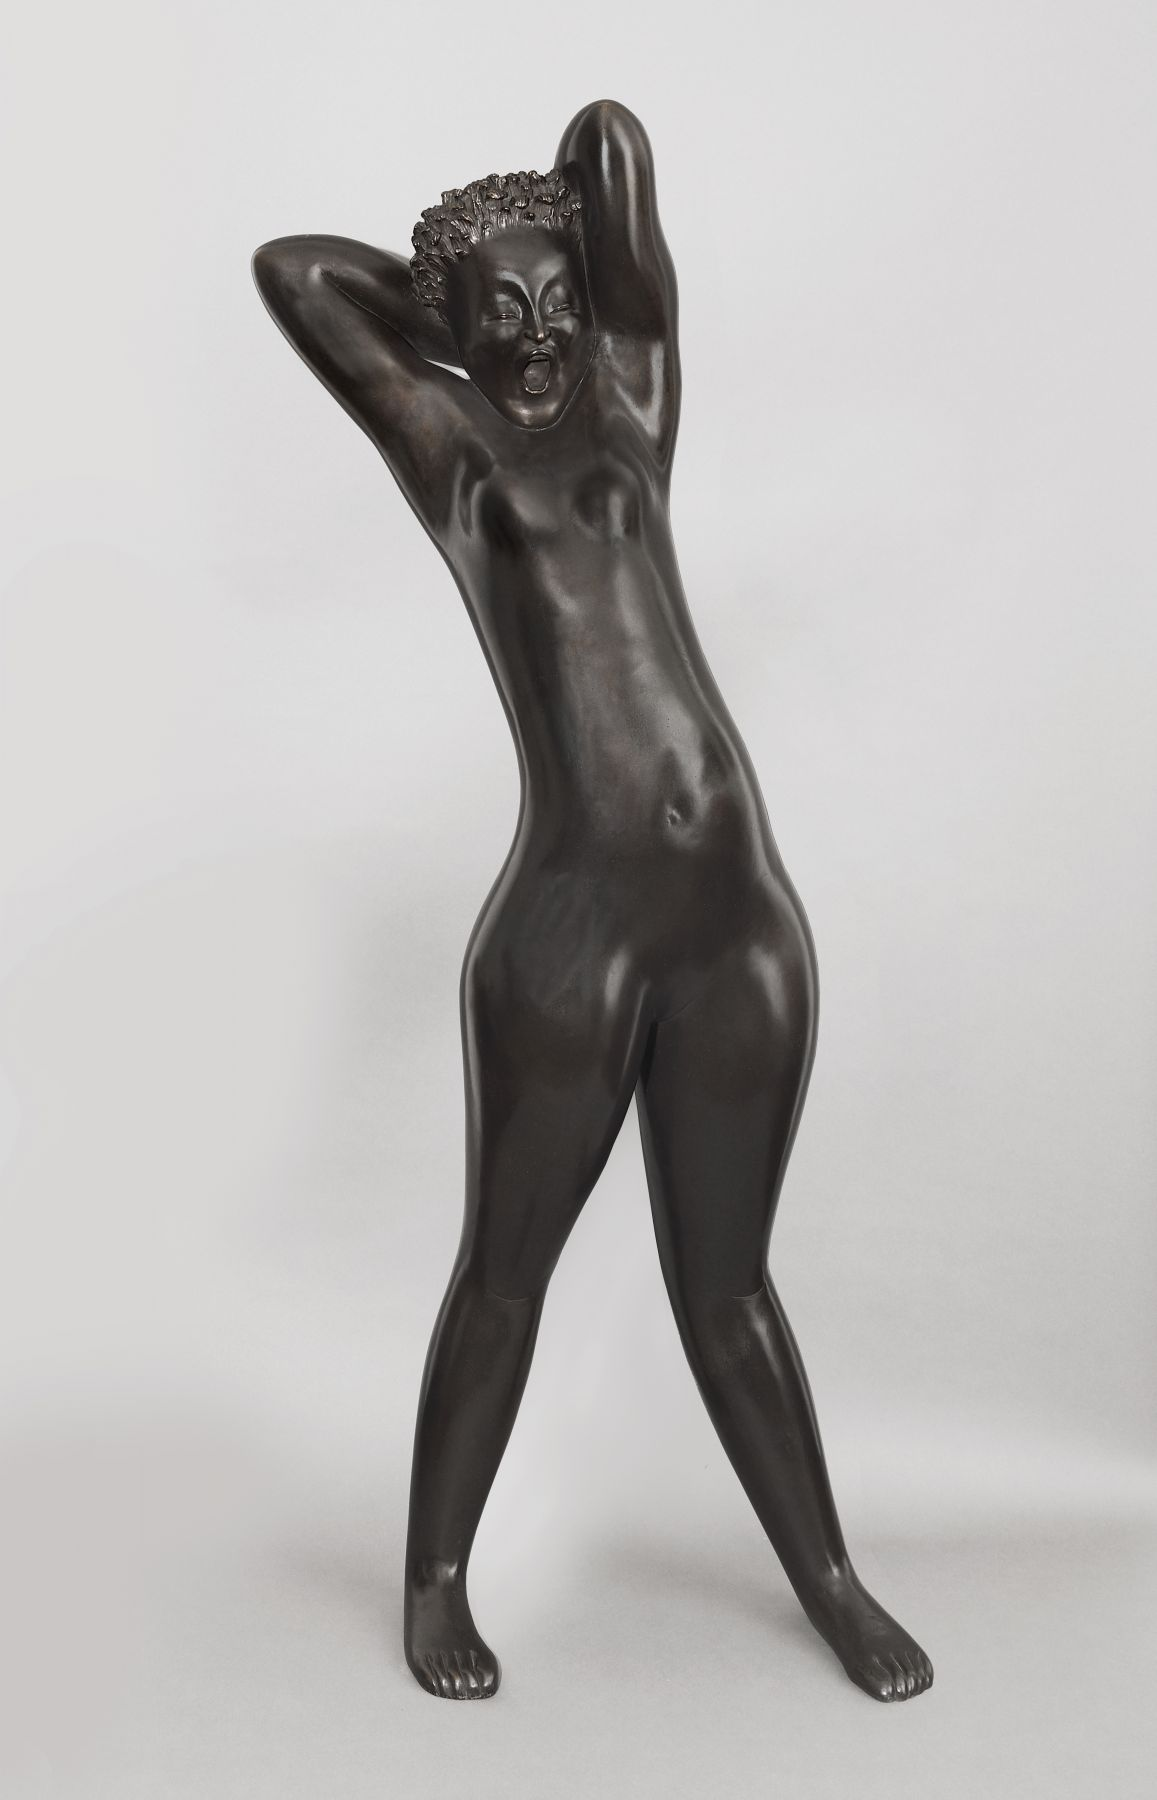 Hugo Robus, Dawn (Yawning Figure), executed in 1931, bronze, 66 1/2 x 28 x 17 inches, Edition of 6